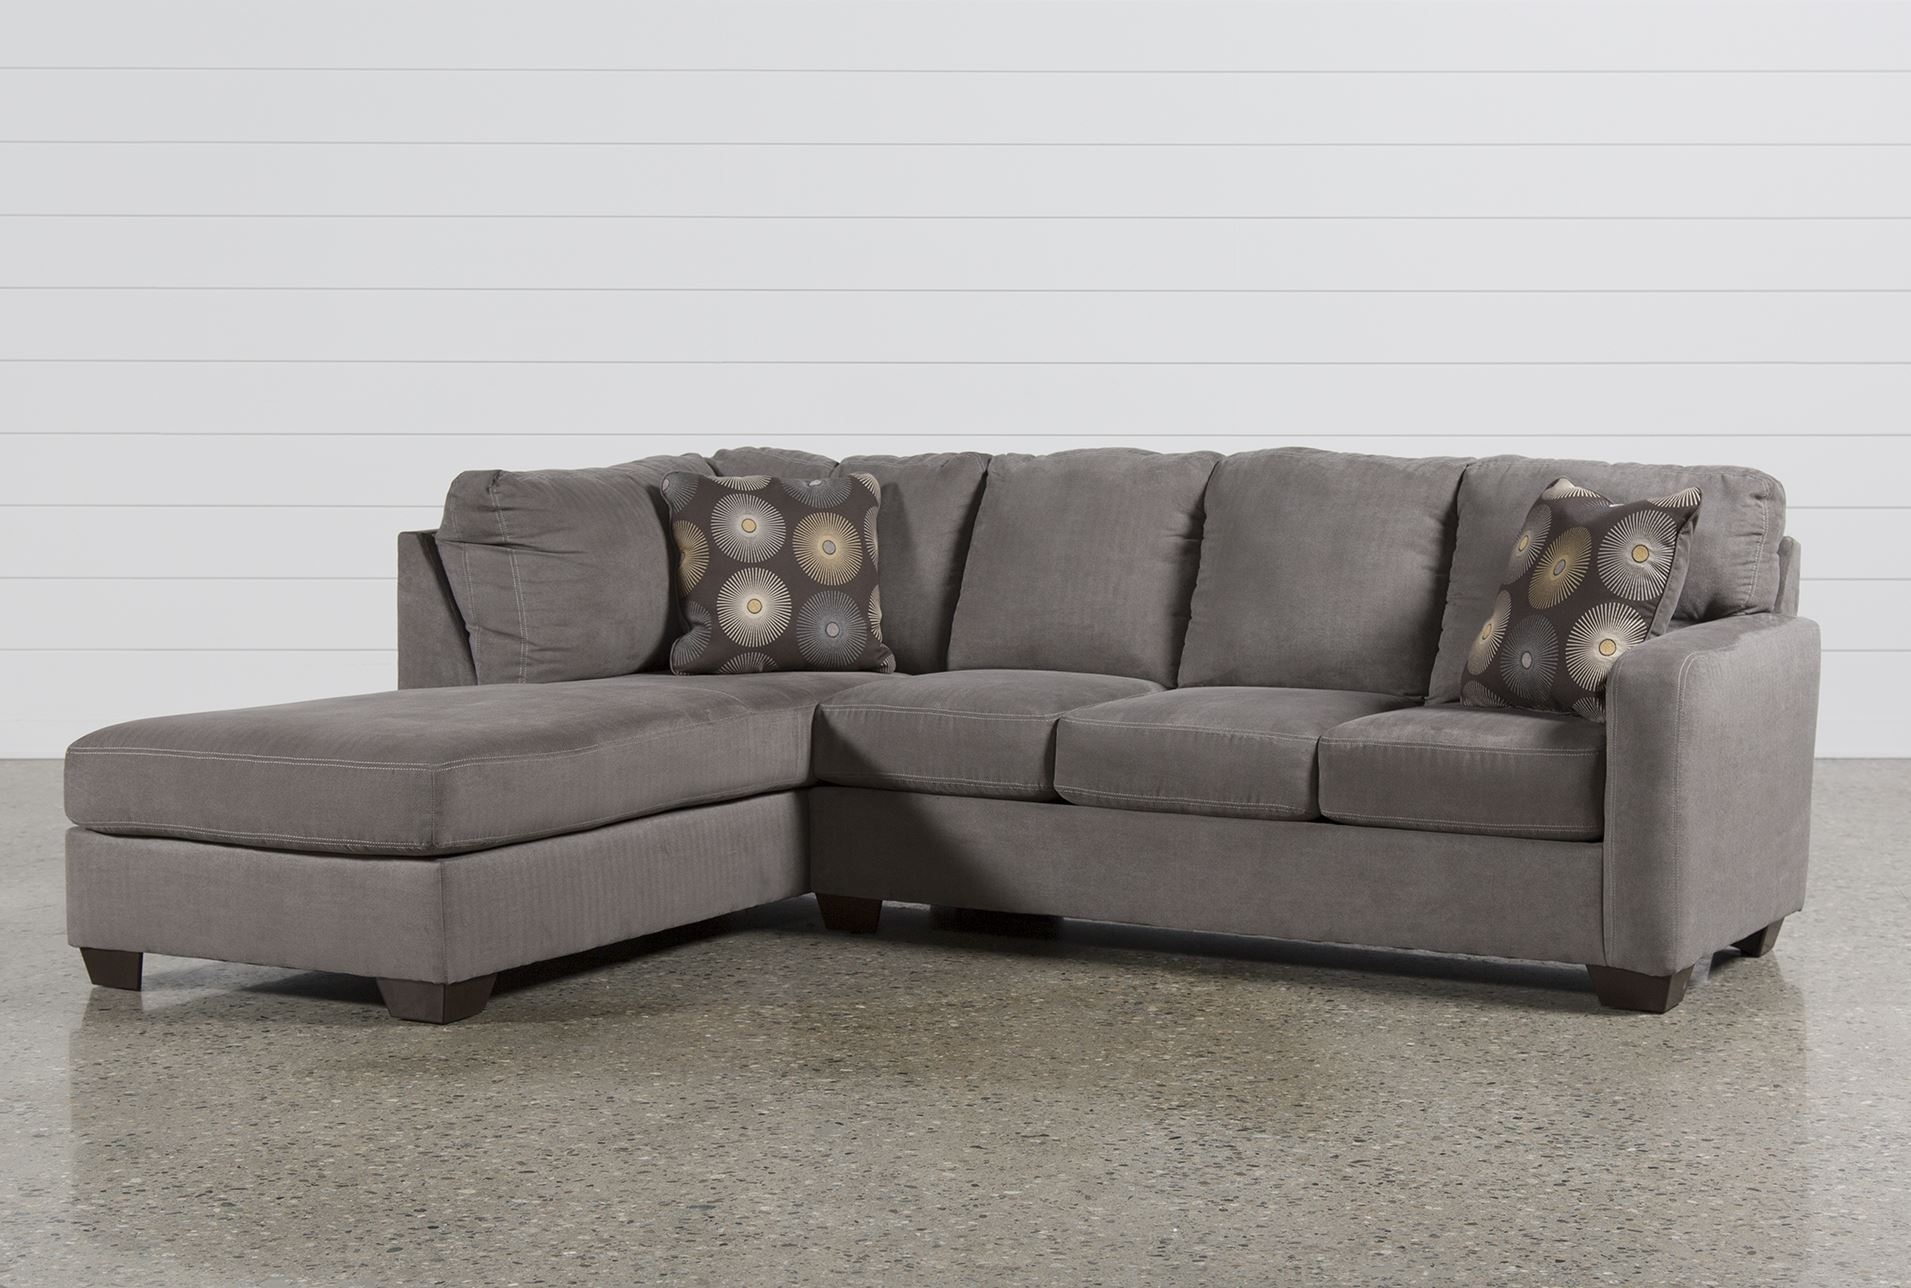 Laf Chaise Sectional Sofa | Baci Living Room Within Arrowmask 2 Piece Sectionals With Laf Chaise (View 5 of 25)